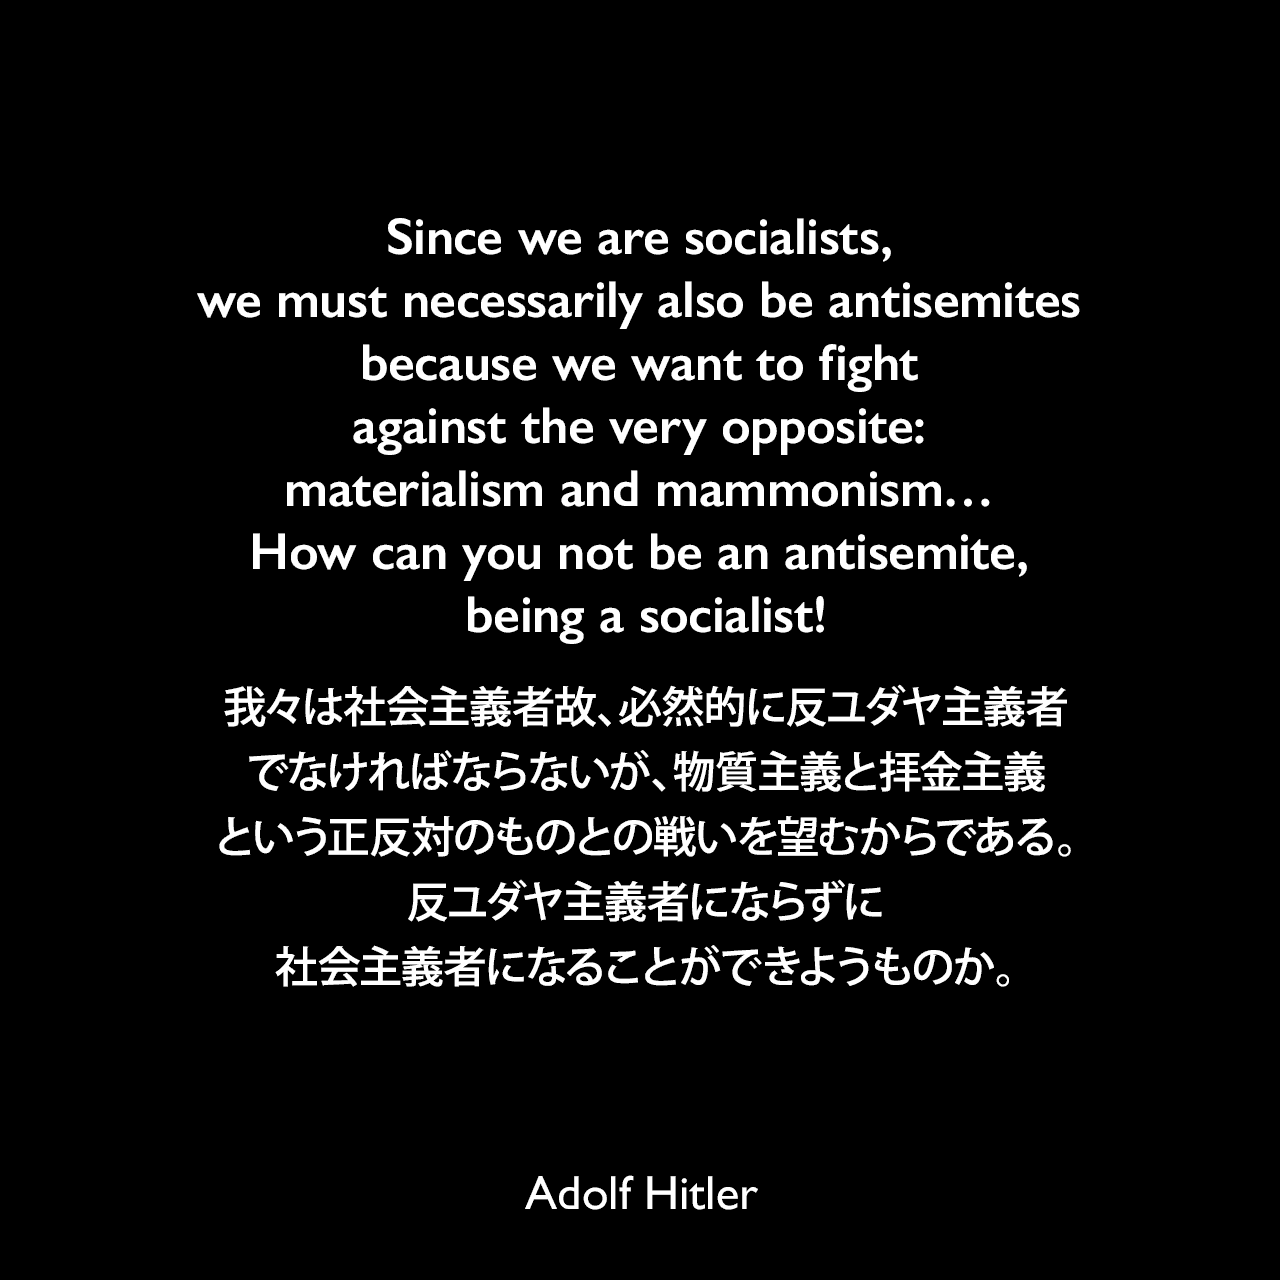 Since we are socialists, we must necessarily also be antisemites because we want to fight against the very opposite: materialism and mammonism… How can you not be an antisemite, being a socialist!我々は社会主義者故、必然的に反ユダヤ主義者でなければならないが、物質主義と拝金主義という正反対のものとの戦いを望むからである。反ユダヤ主義者にならずに社会主義者になることができようものか。- 1920年8月15日ミュンヘンでのスピーチ「Why We Are Anti-Semites」よりAdolf Hitler